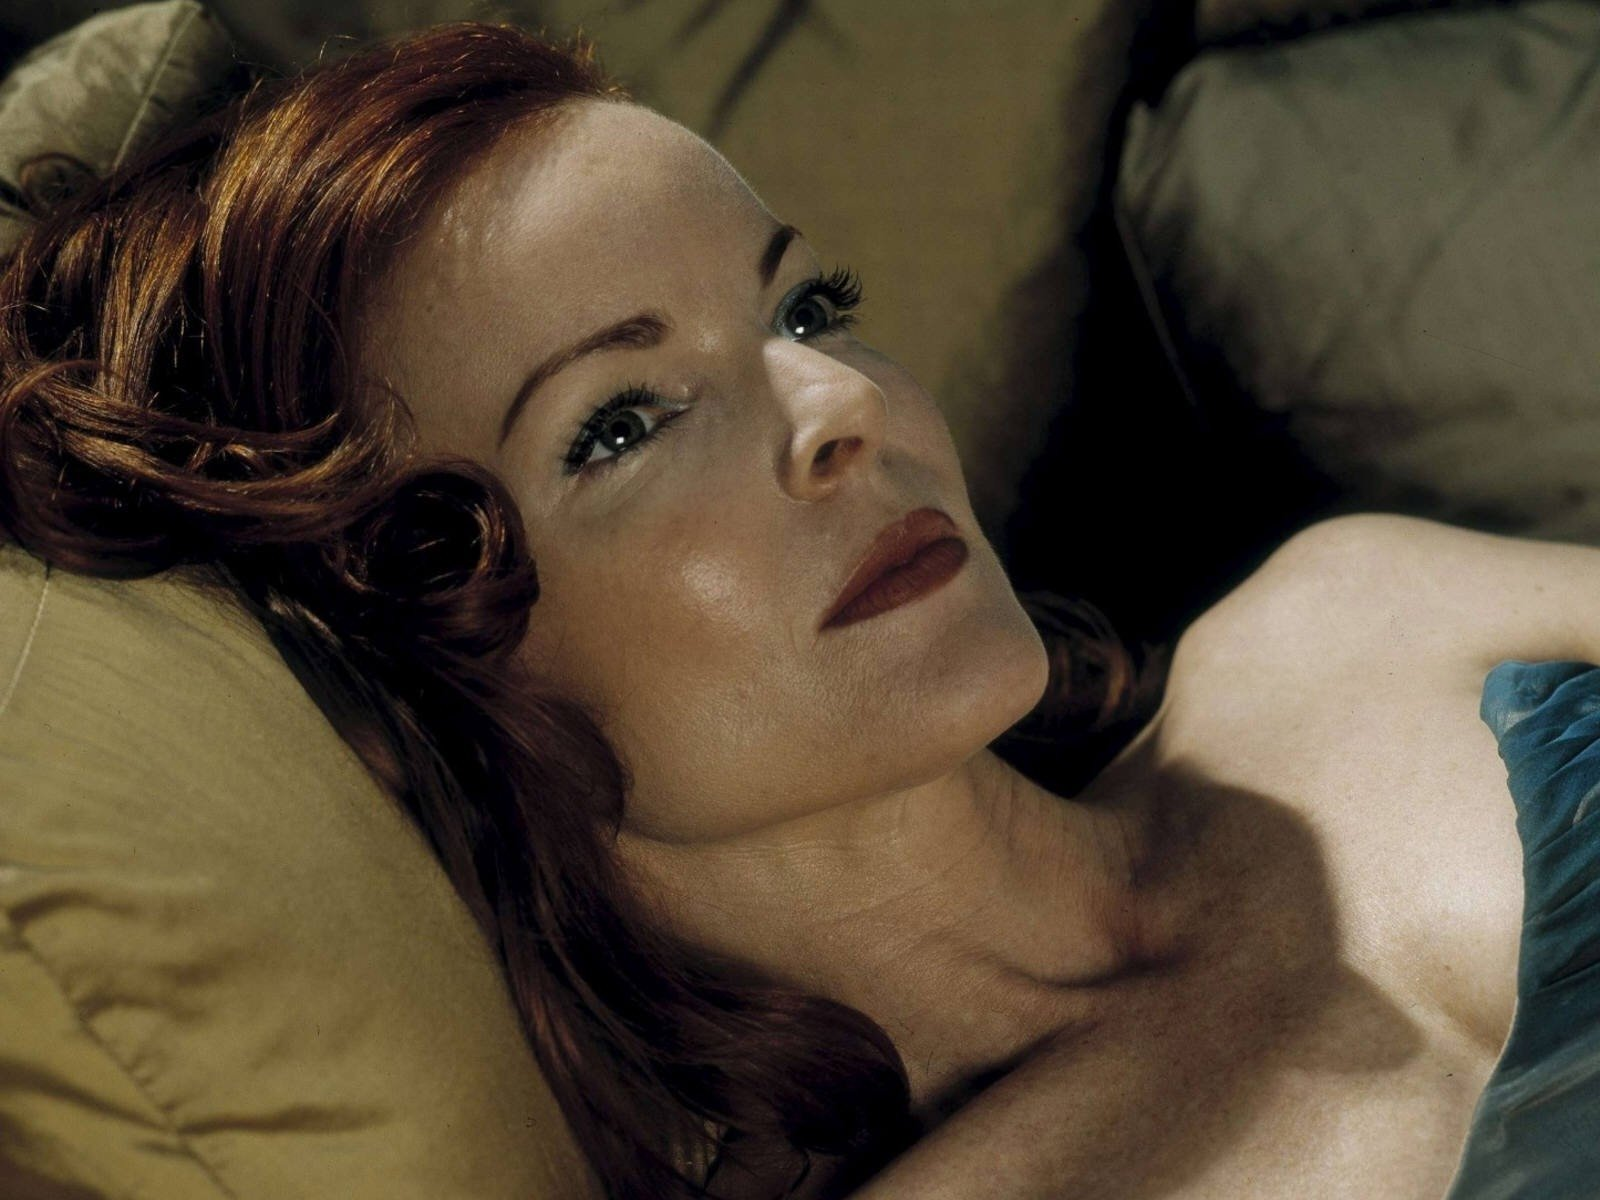 Wallpaper: un'immagine da diva per Marcia Cross